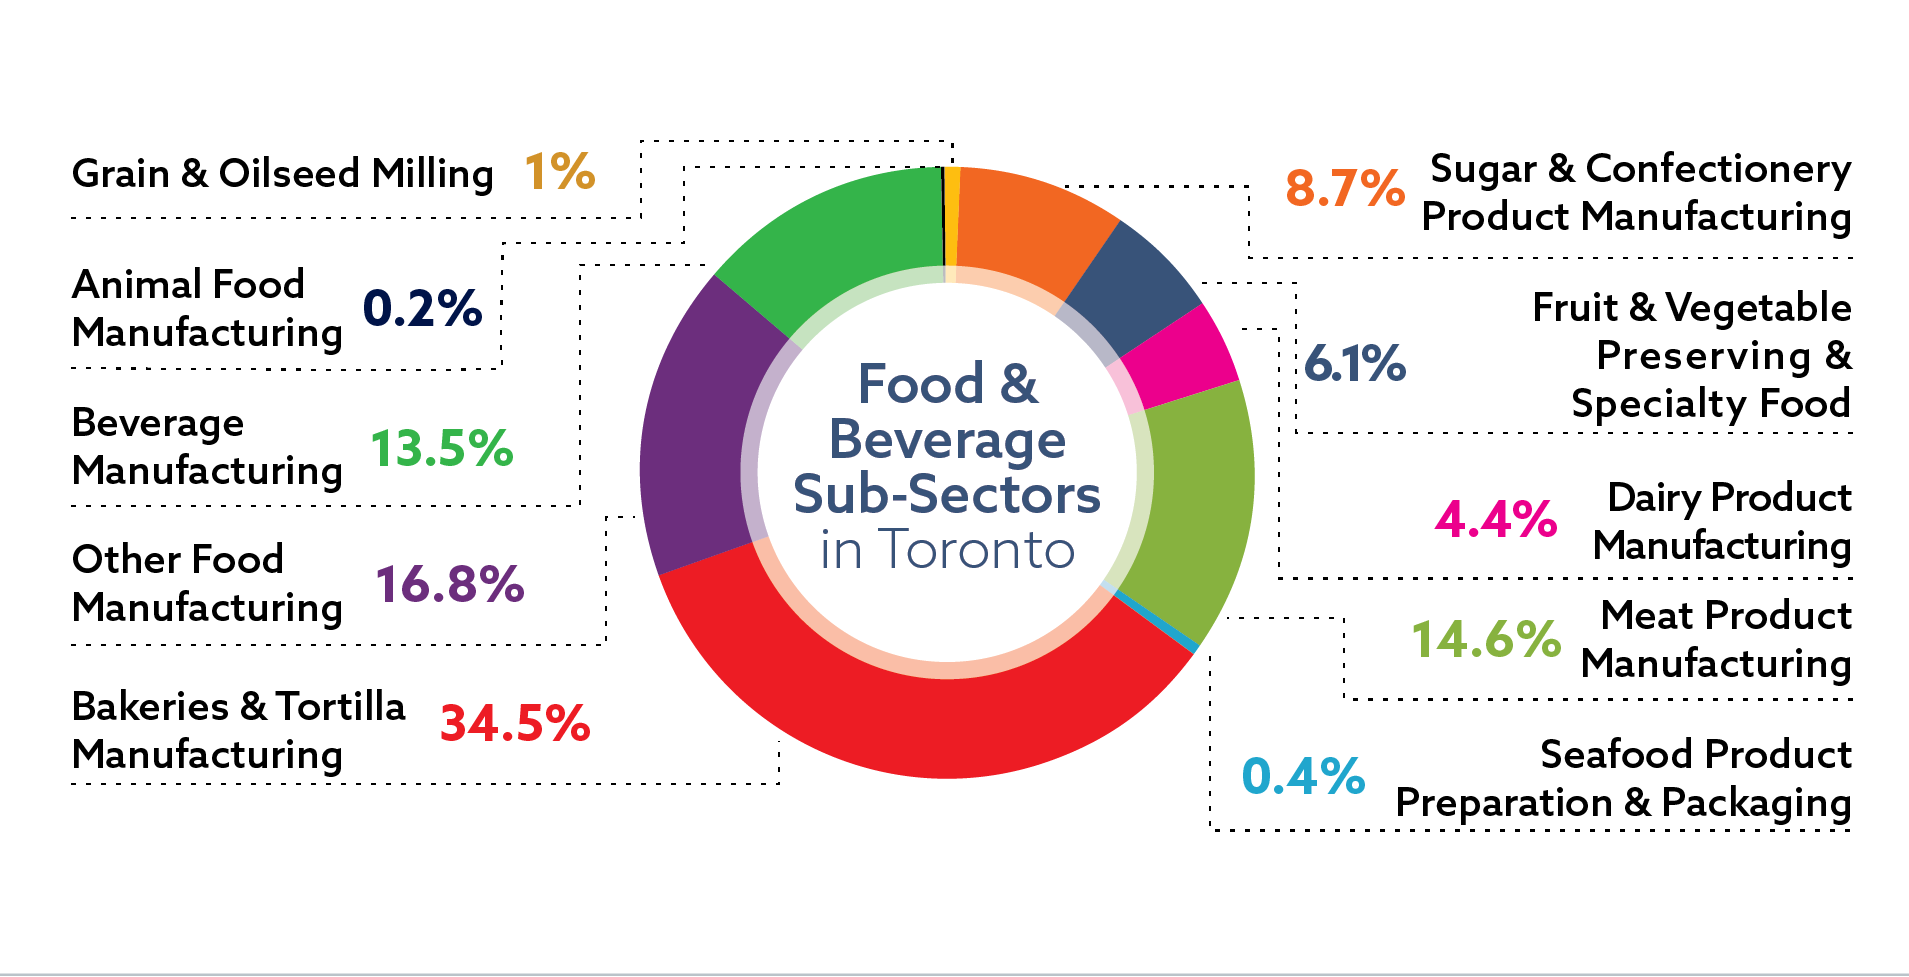 Distribution of jobs in the food and beverage sector in the Toronto region: bakeries and tortilla manufacturing 34.5 percent of sector jobs; other food manufacturing 16.8 percent of sector jobs; meat product manufacturing 14.6 percent of sector jobs; beverage manufacturing 13.5 percent of sector jobs; sugar and confectionery product manufacturing 8.7 percent of sector jobs; fruit and vegetable preserving and specialty food 6.1 percent of sector jobs; dairy product manufacturing 4.4 percent of sector jobs; grain and oilseed milling 1 percent of sector jobs; seafood product preparation and packaging 0.4 percent of sector jobs; animal food manufacturing 0.2 percent of sector jobs